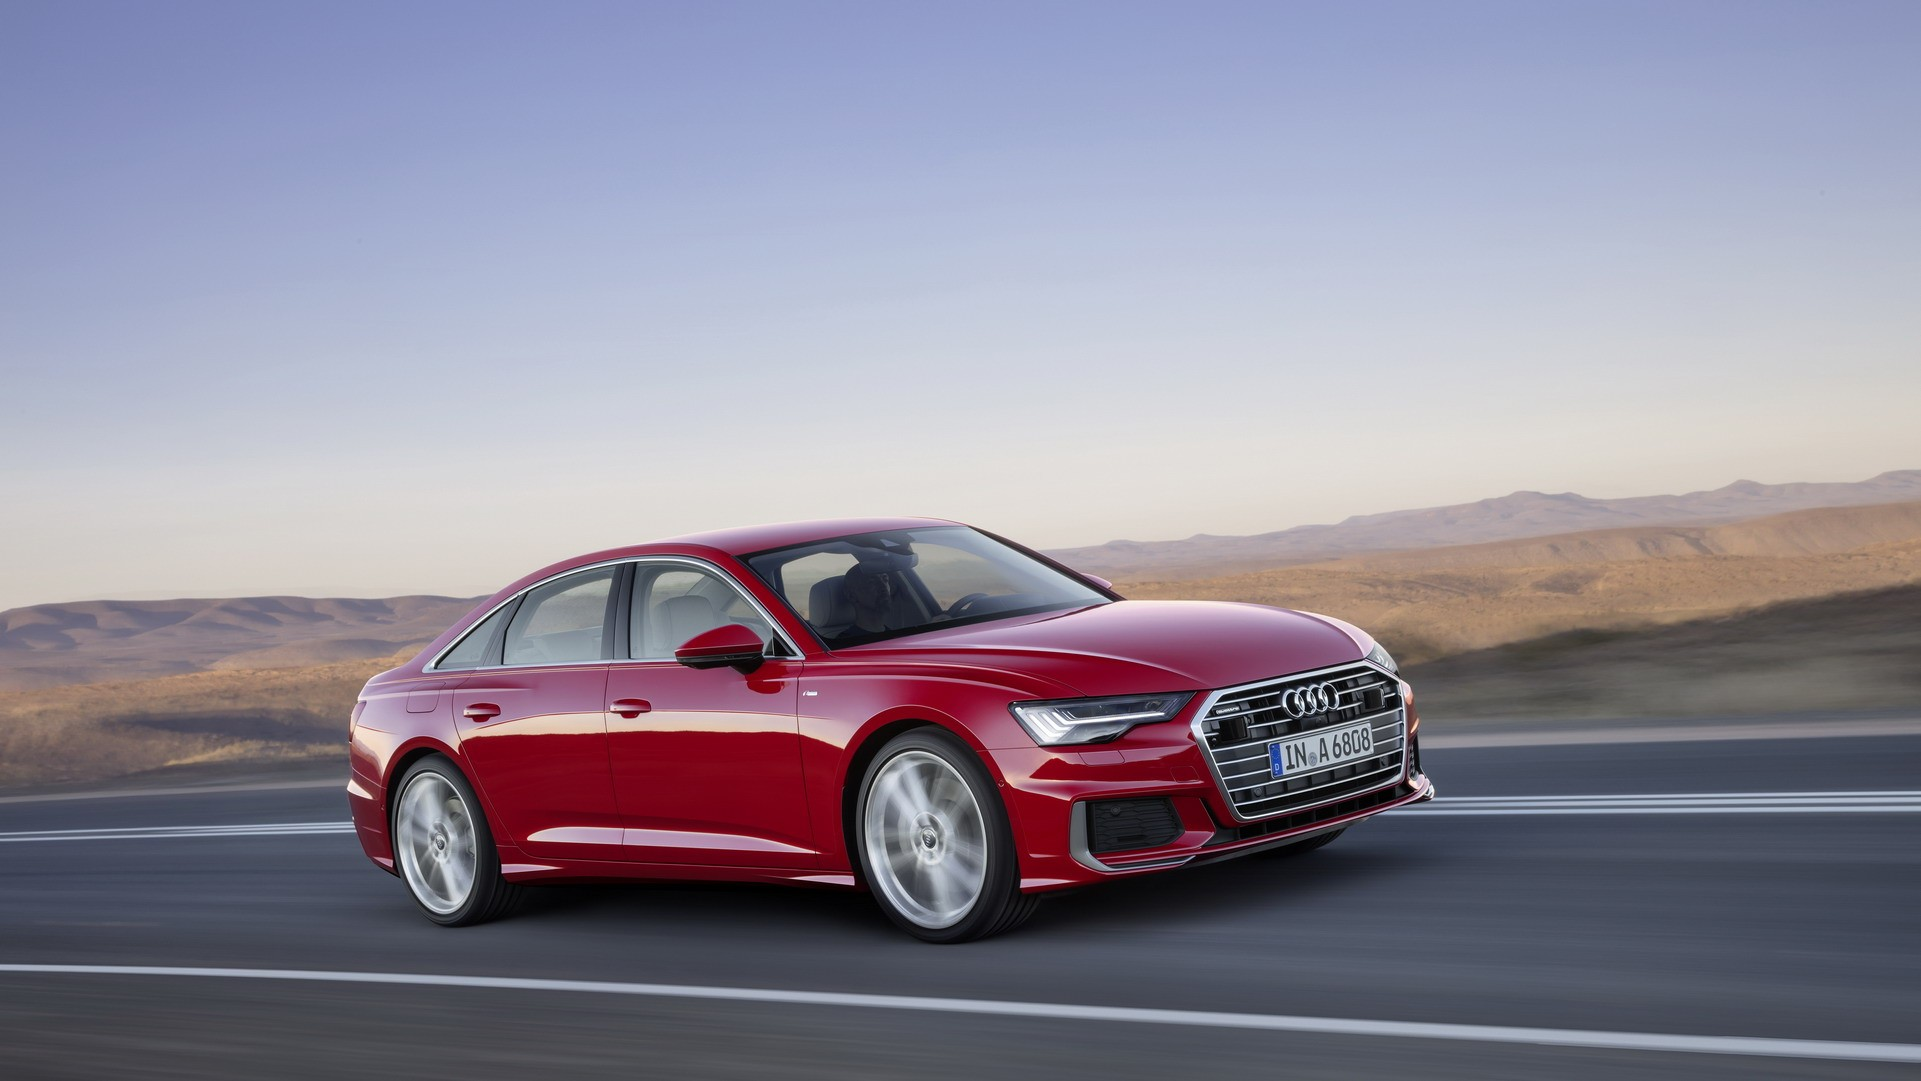 2019 Audi A6 Revealed With Mild-Hybrid V6 Engines, Quattro Comes Standard - autoevolution